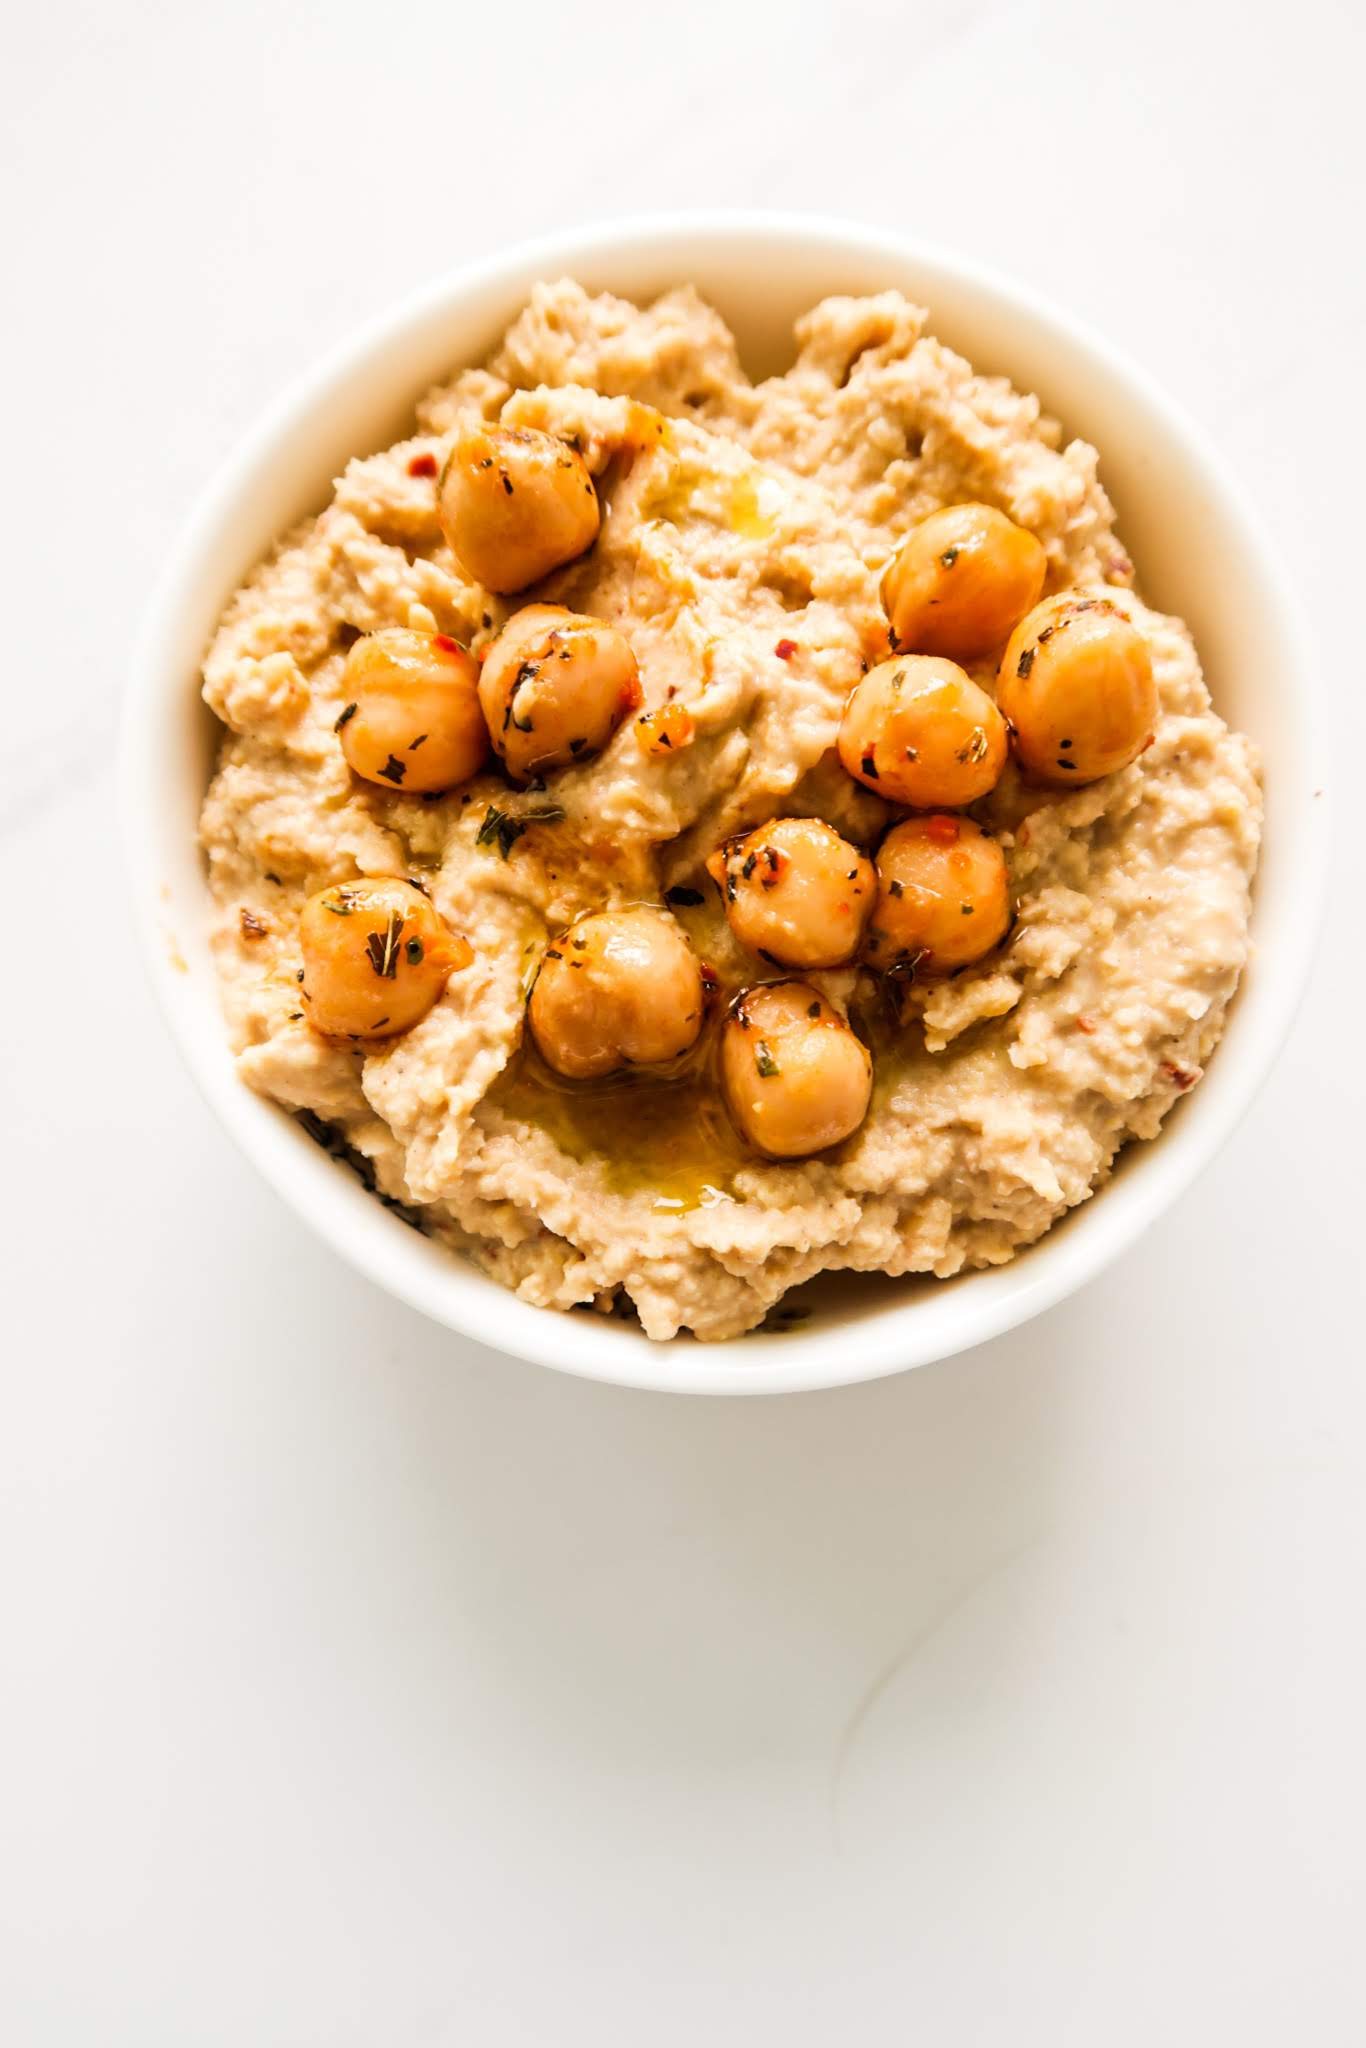 The best hummus! This healthy hummus recipe is spicy, full of flavor and just the best snack, ingredient in dinner or lunch bowls or healthy wraps! Your dinner table needs this easy hummus recipe. It's only 5 ingredients - chickpeas, tahini, garlic, crushed red pepper and lemon juice and it's ready in 5 minutes.